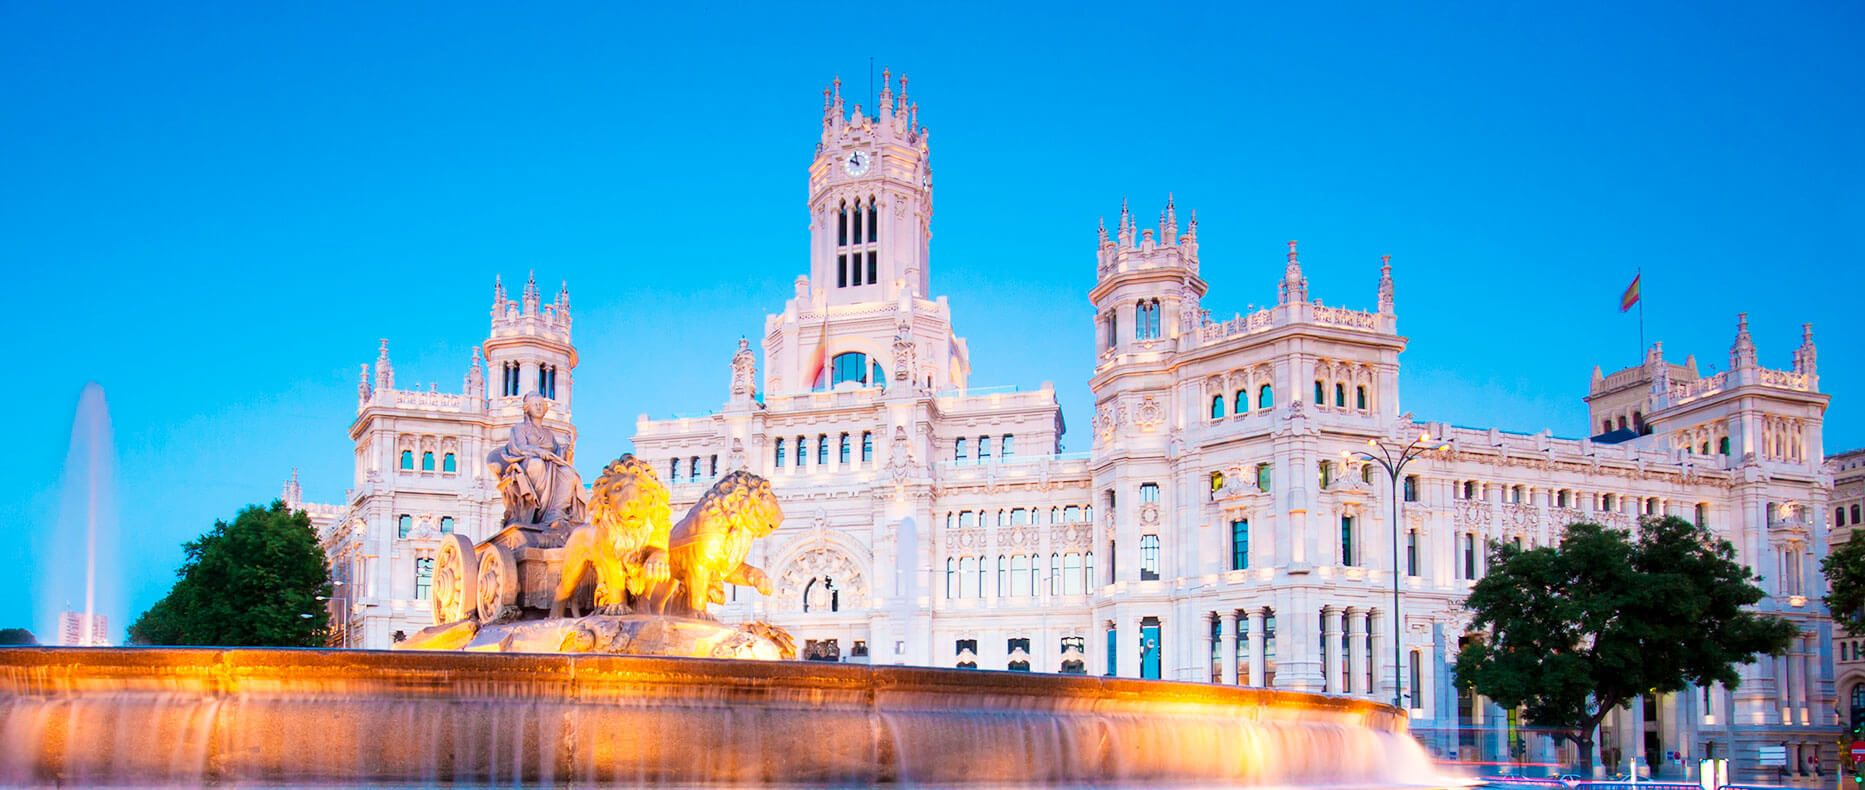 Destination Spain - BE Spain DMC, Events & Communication Travel Agency Malaga Spain